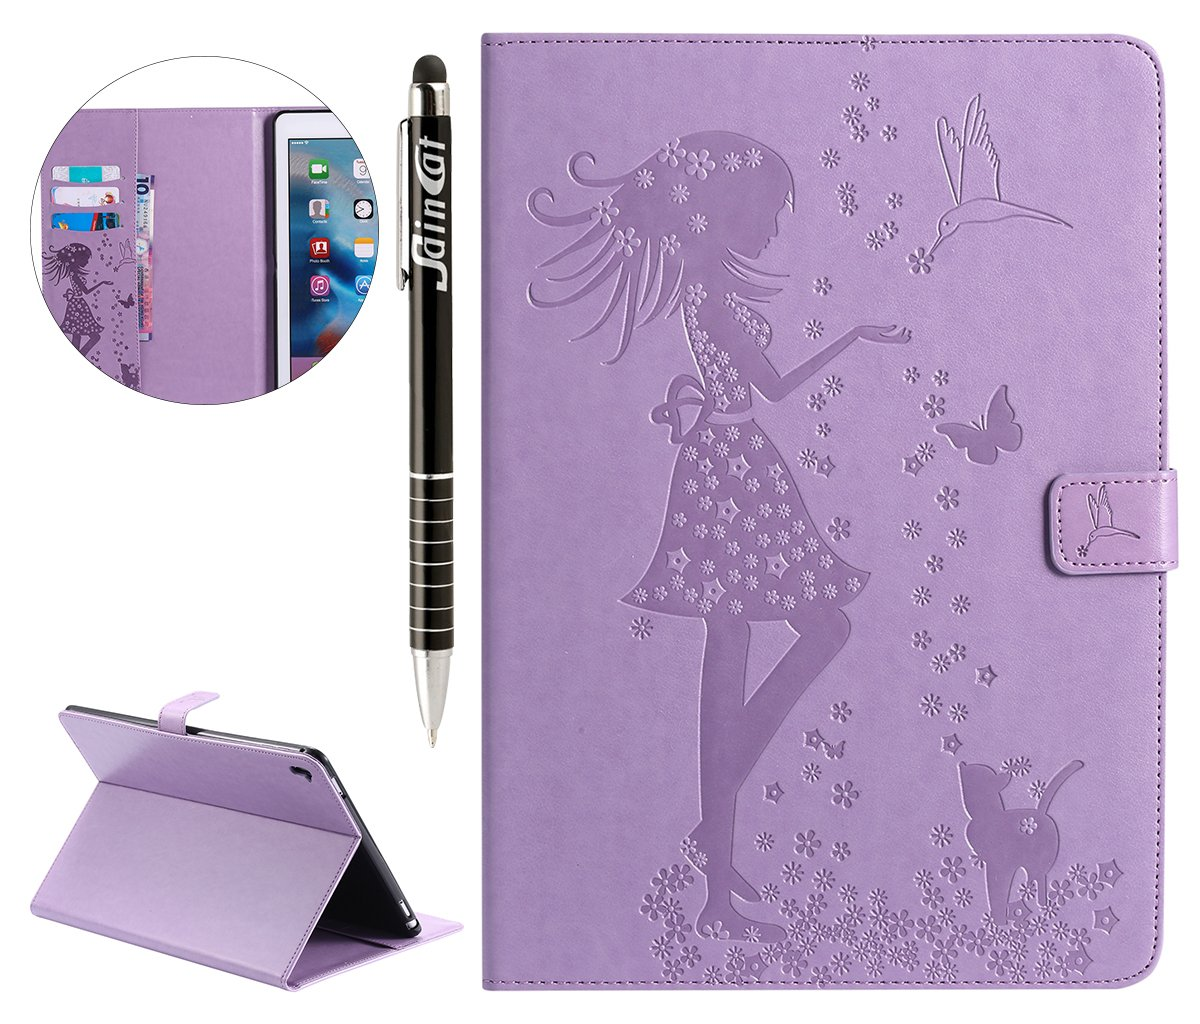 Custodia iPad Pro 9.7, SainCat Custodia Pelle Ultra Sottile Portafoglio Shock-Absorption Flip Gatto e Donna Cover per iPad Pro 9.7-Luce Viola FILP012493